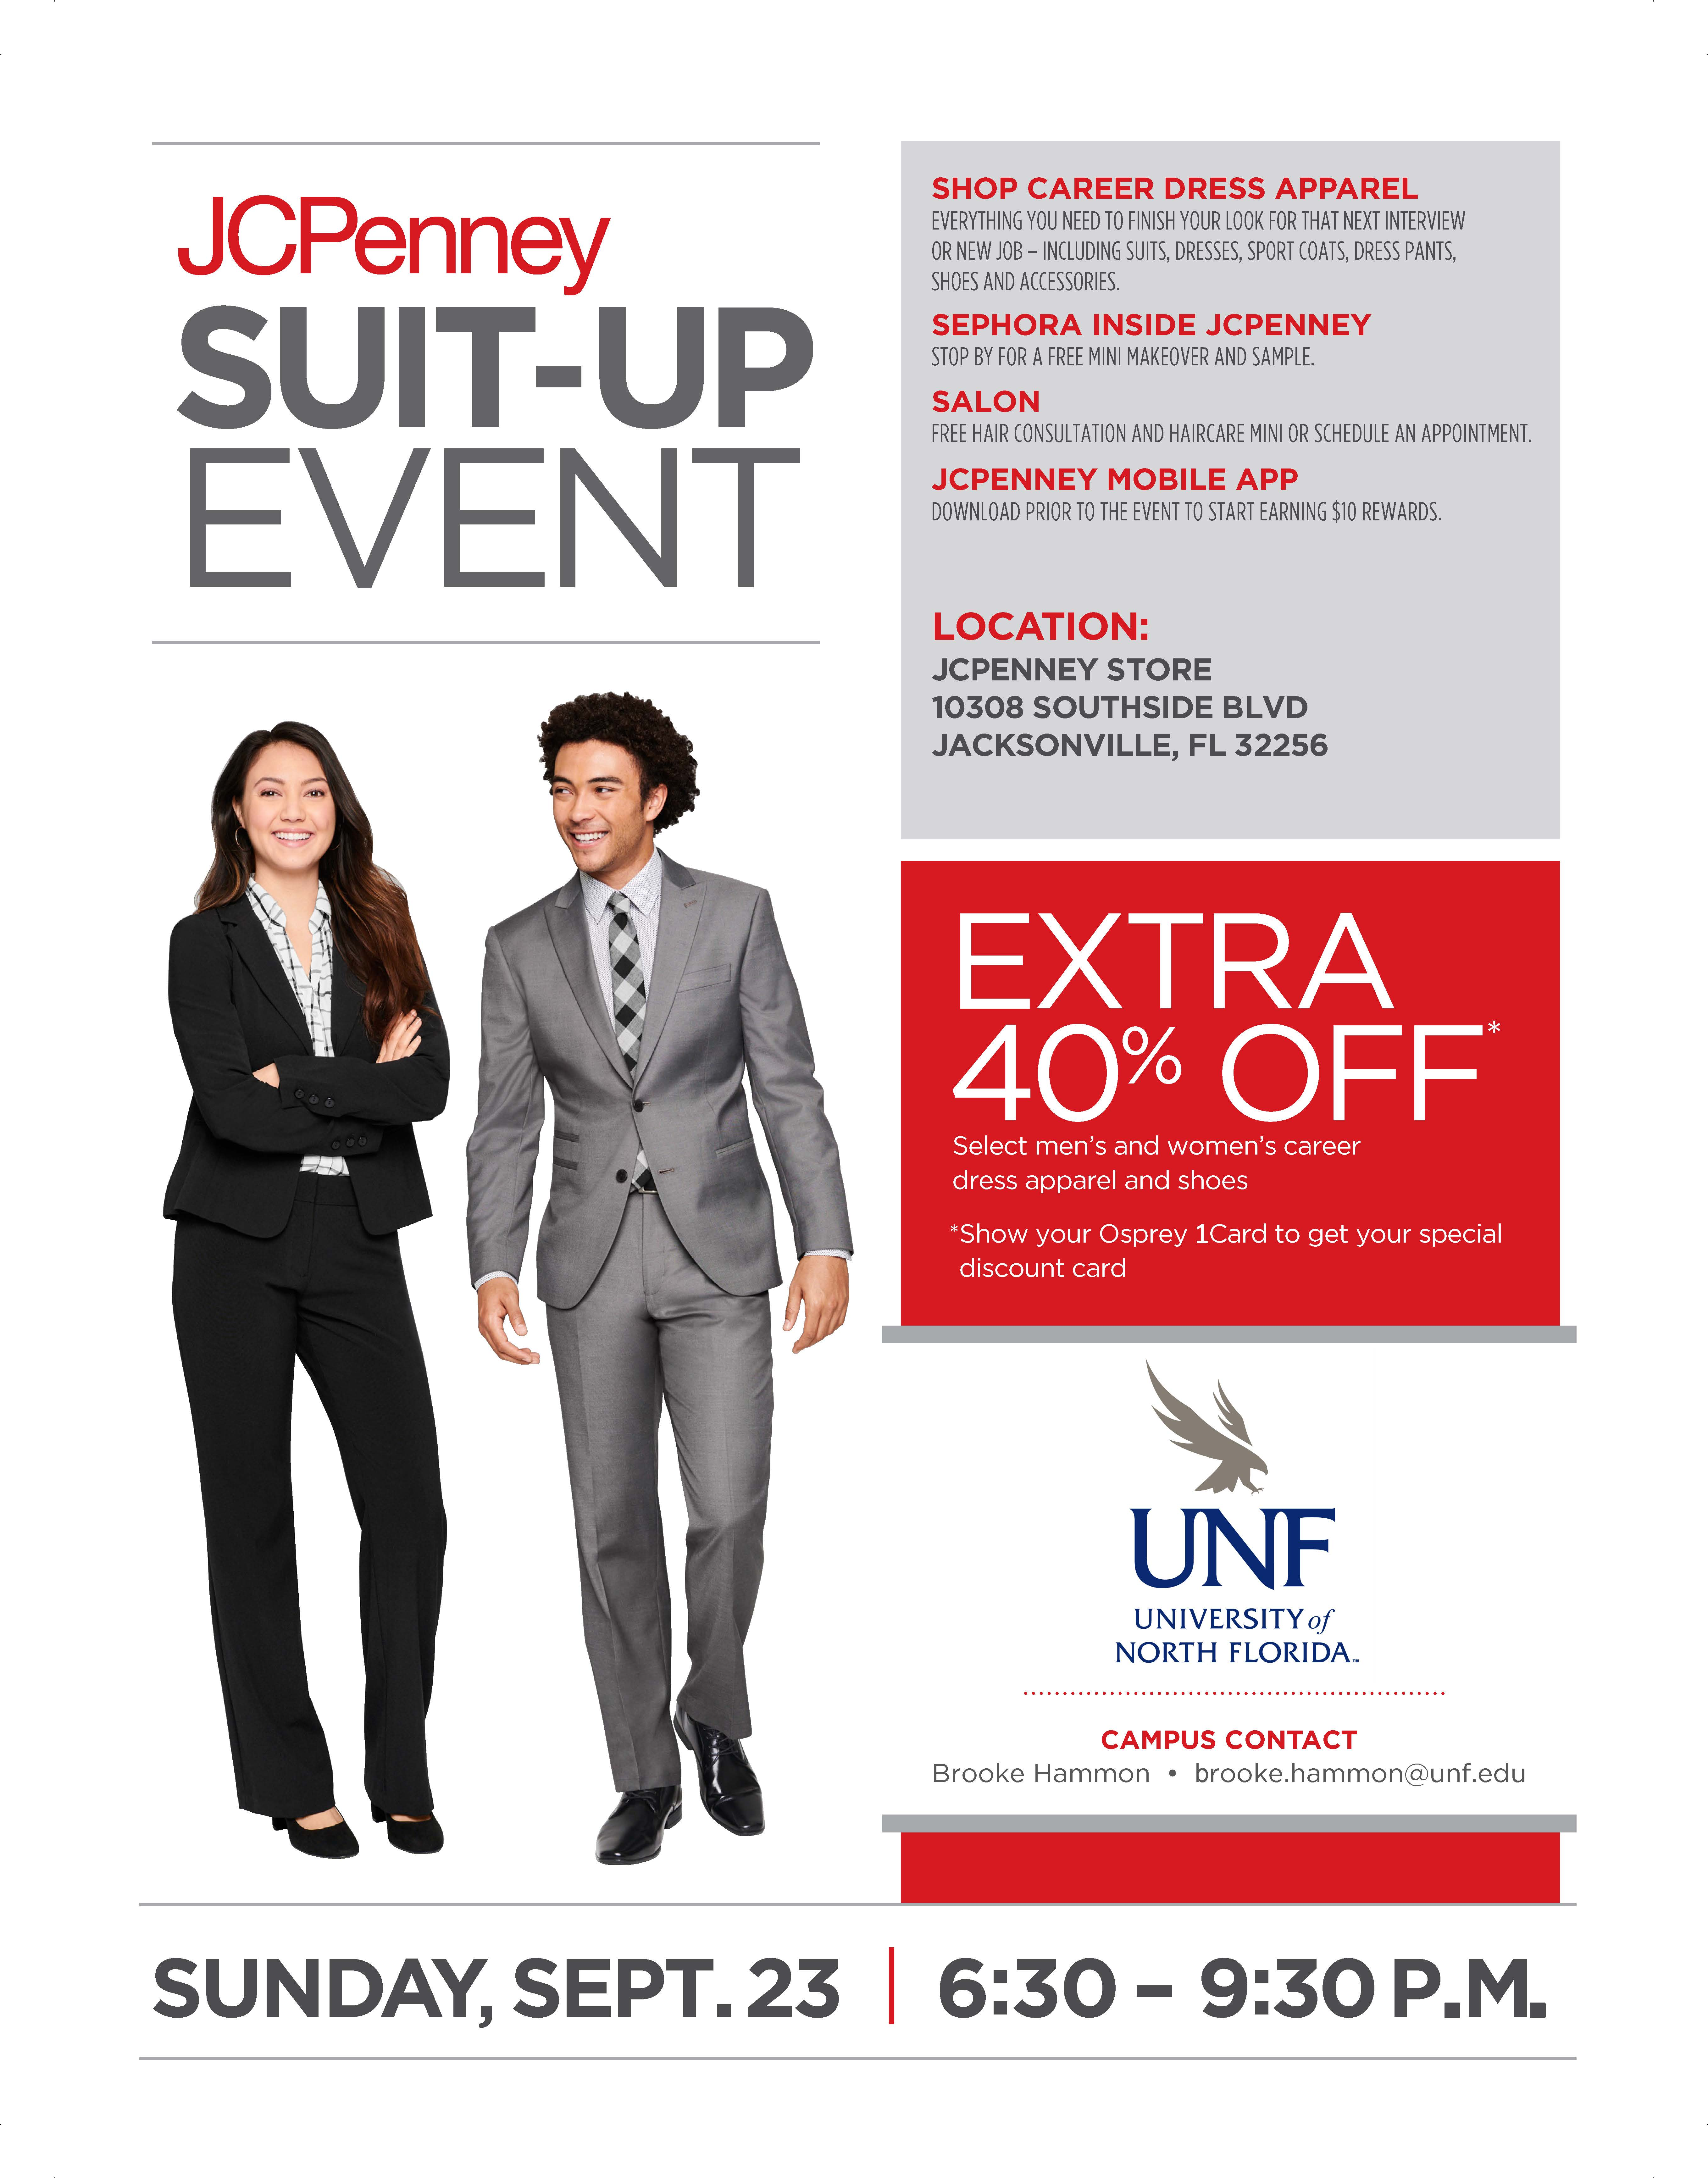 Jcpenney Suit Up Event Beta Alpha Psi Unf